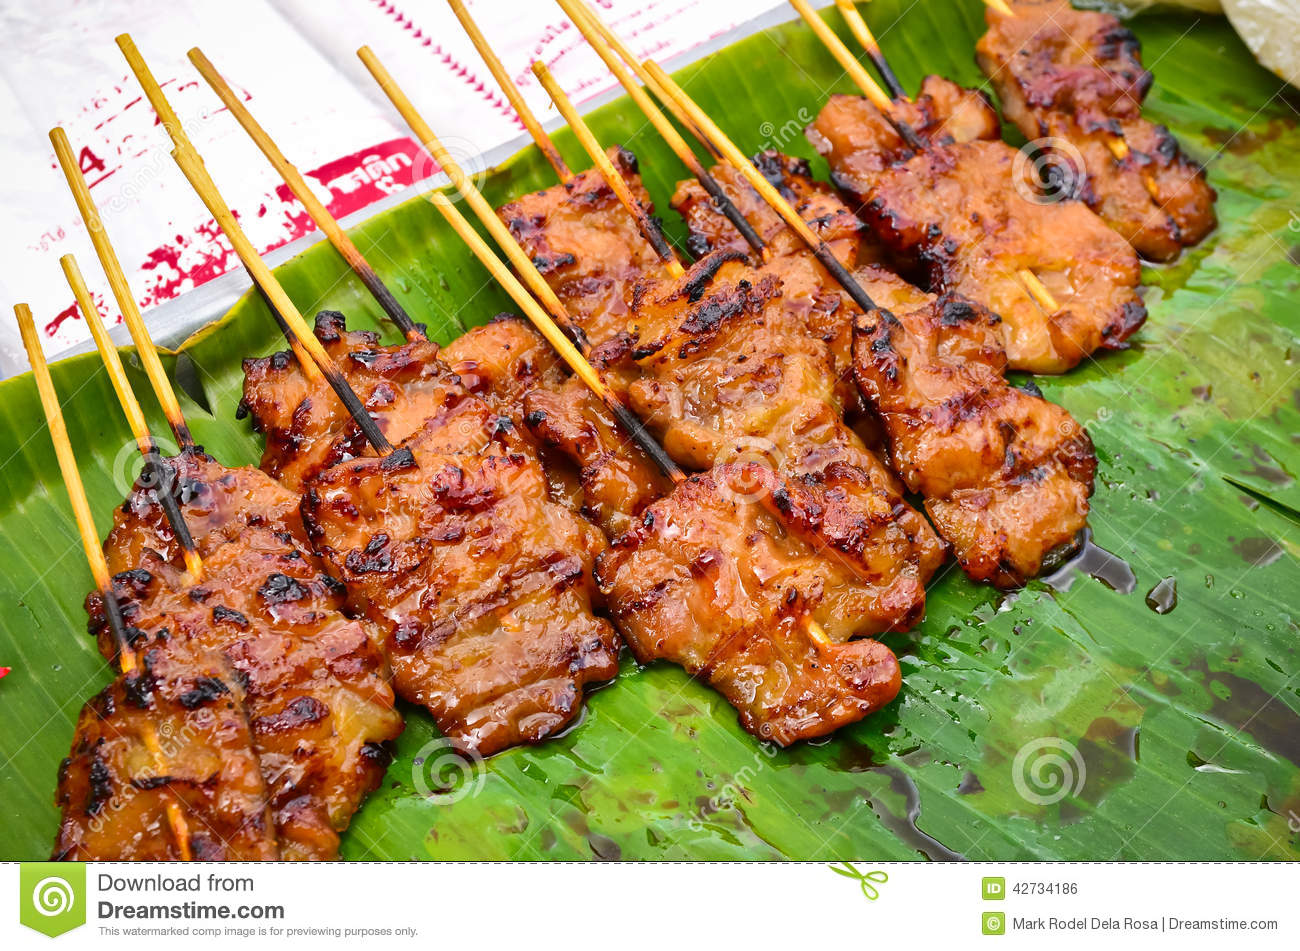 Thai Pork Barbecue Street Food Stock Photo - Image: 42734186